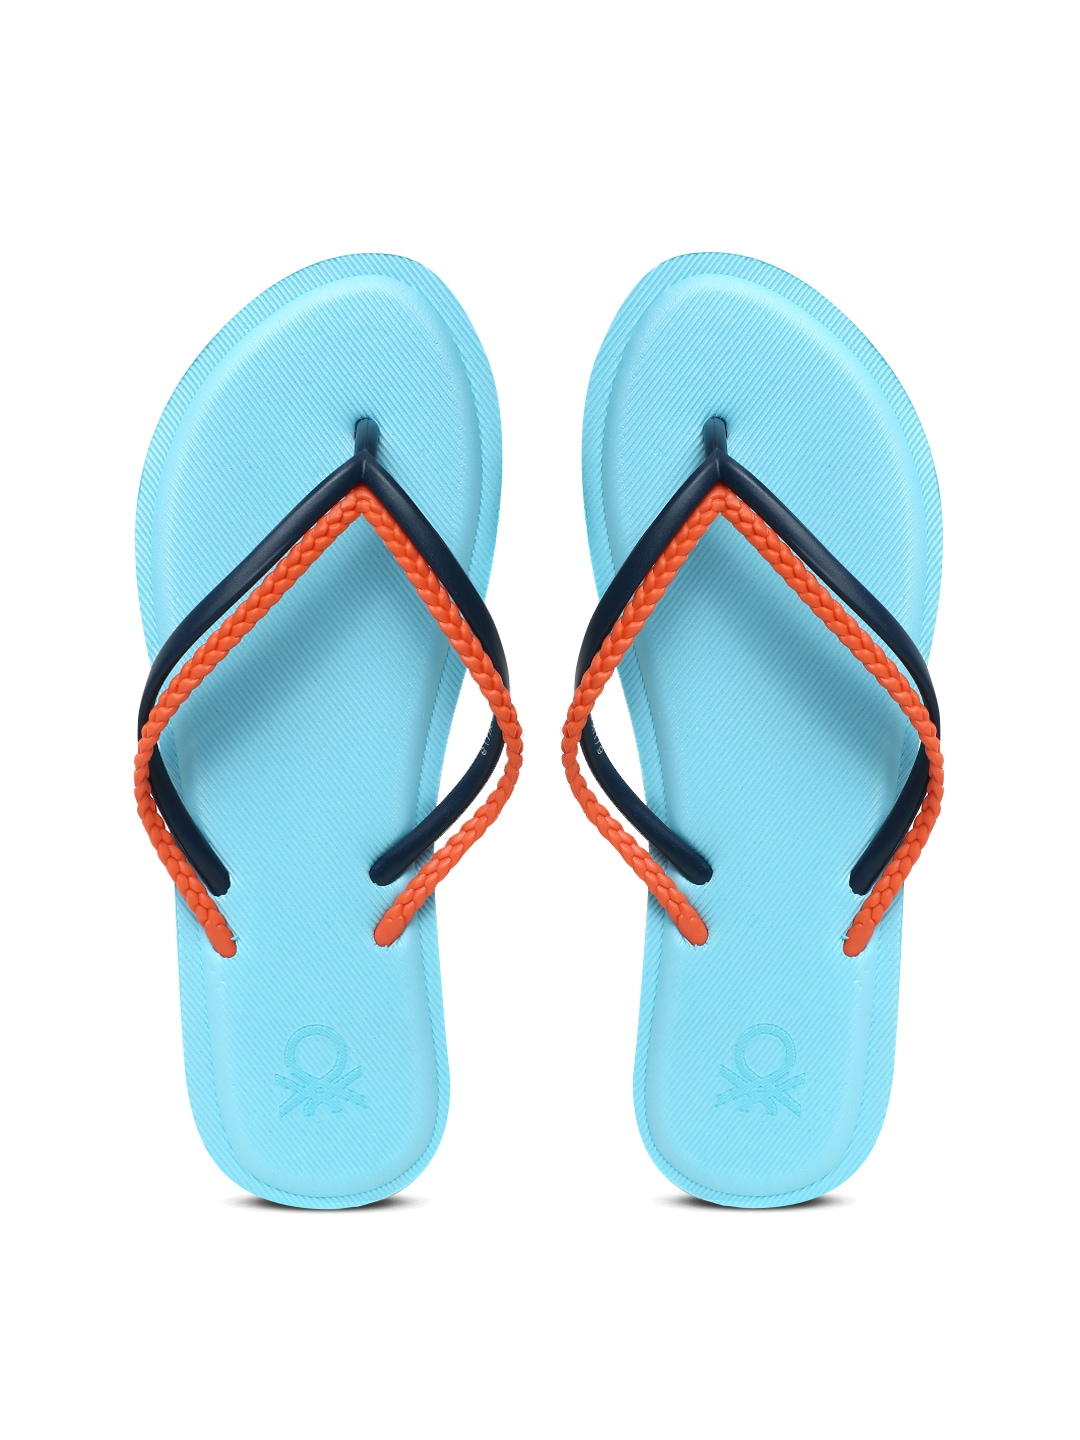 6c052d5984c5 Chappal - Buy Flip Flops   Chappals Online In India